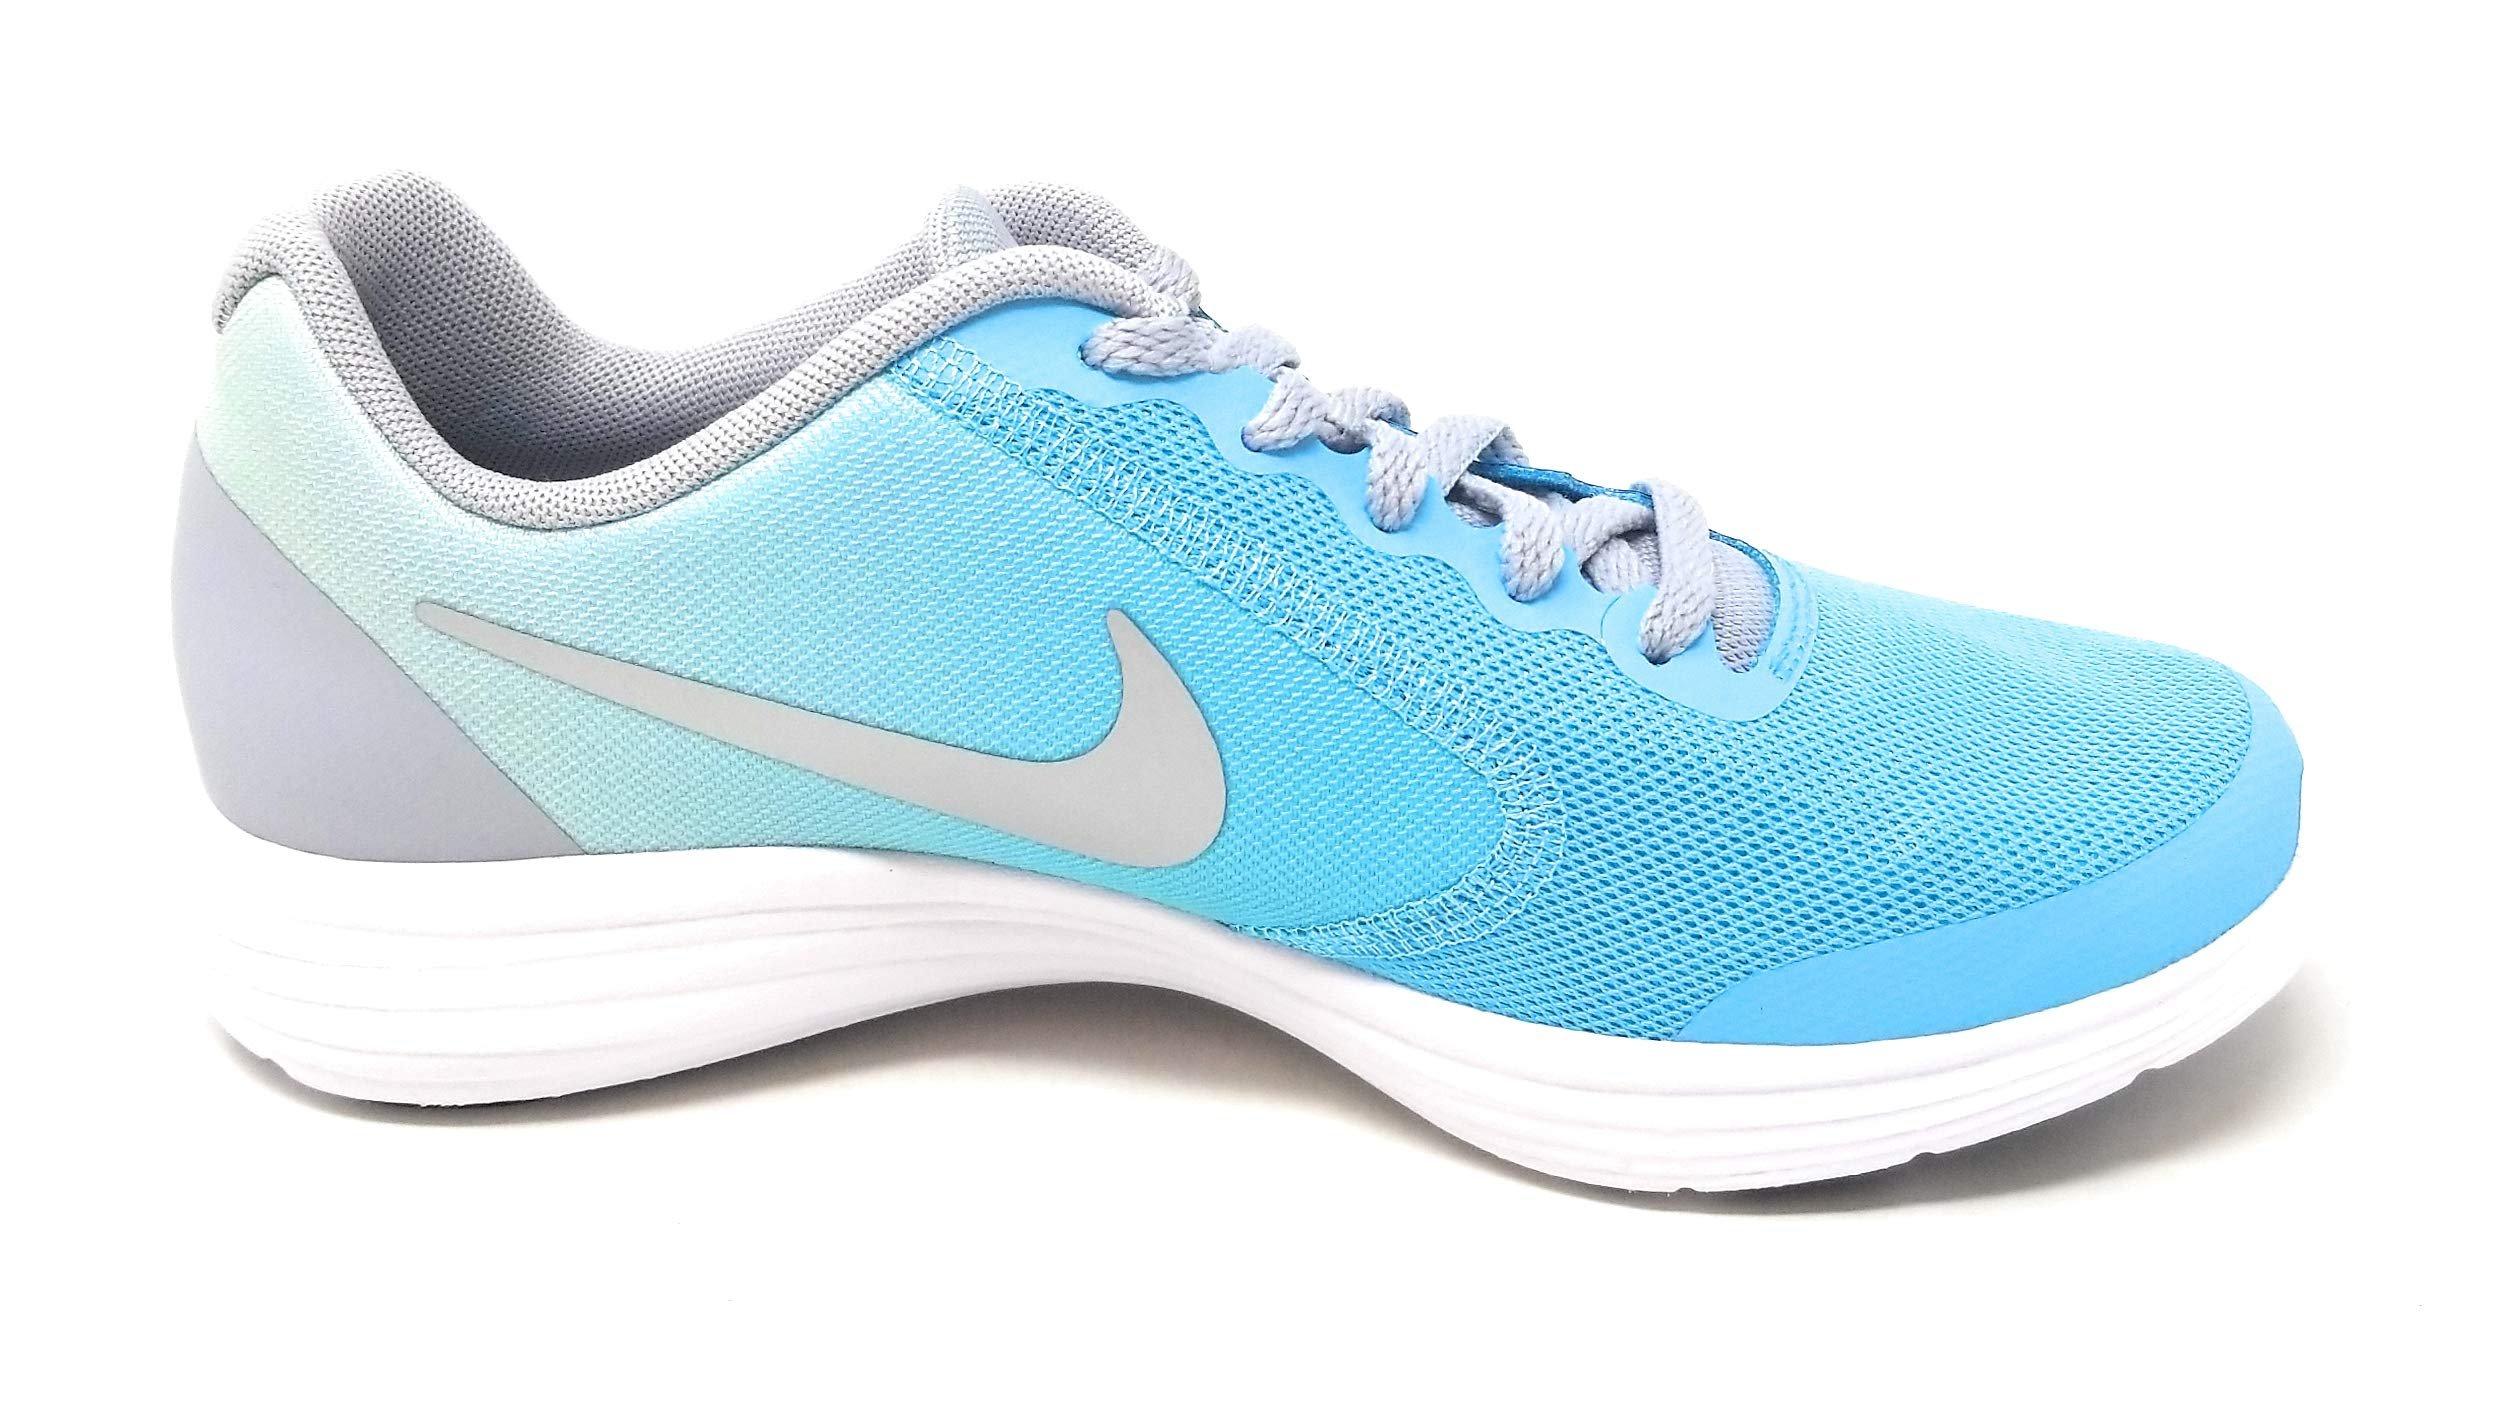 Nike Kids' Revolution 3 (GS) Running Shoes Polarized Blue/Metallic Silver 4.5 Y US by Nike (Image #2)